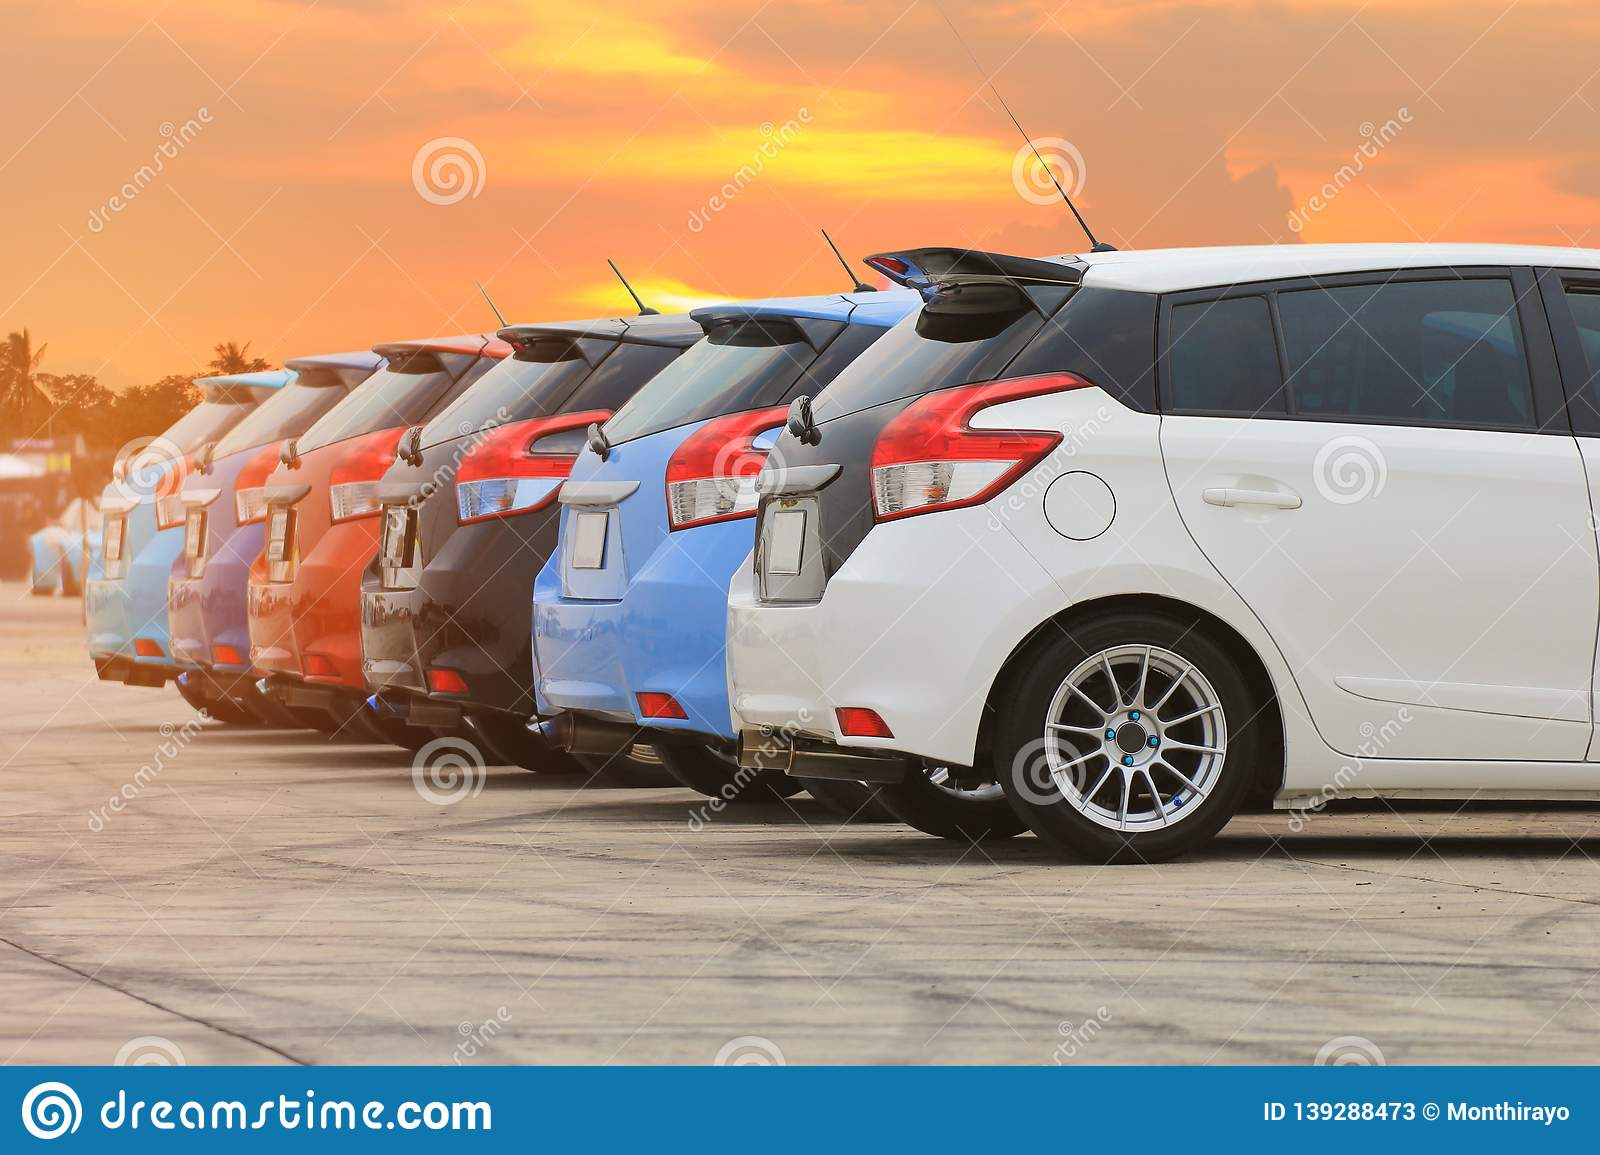 Colorful of cars in the parking lot on sunset background